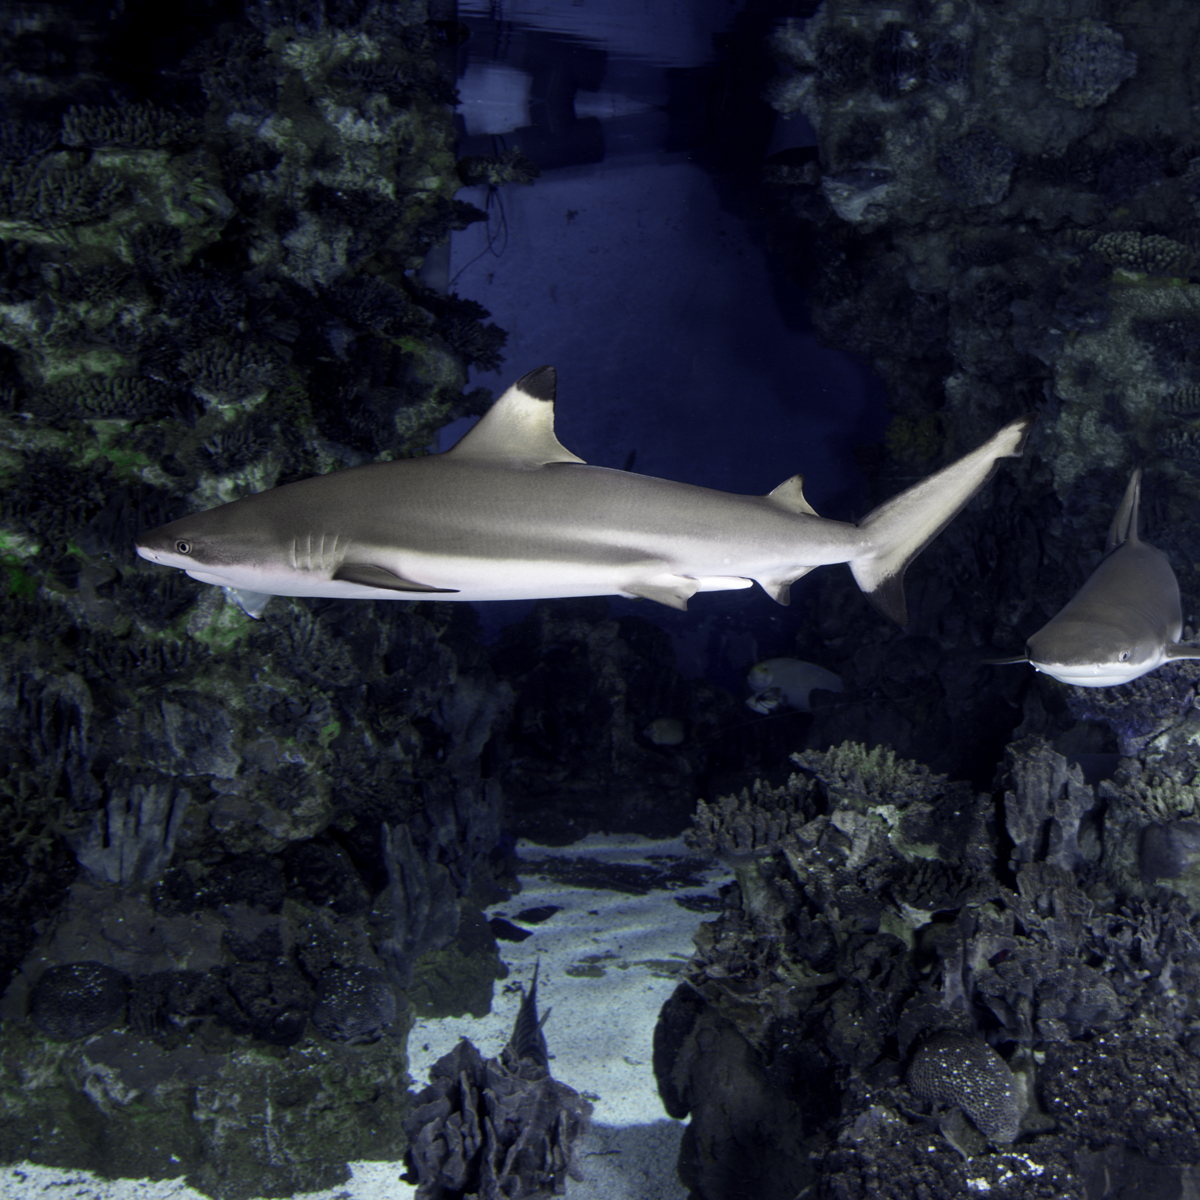 Did You Know That The Blacktip Reef Sharks Cannot Stop Swimming Just Like Other Their Breathing Is Pive They Need To Swim Continuously